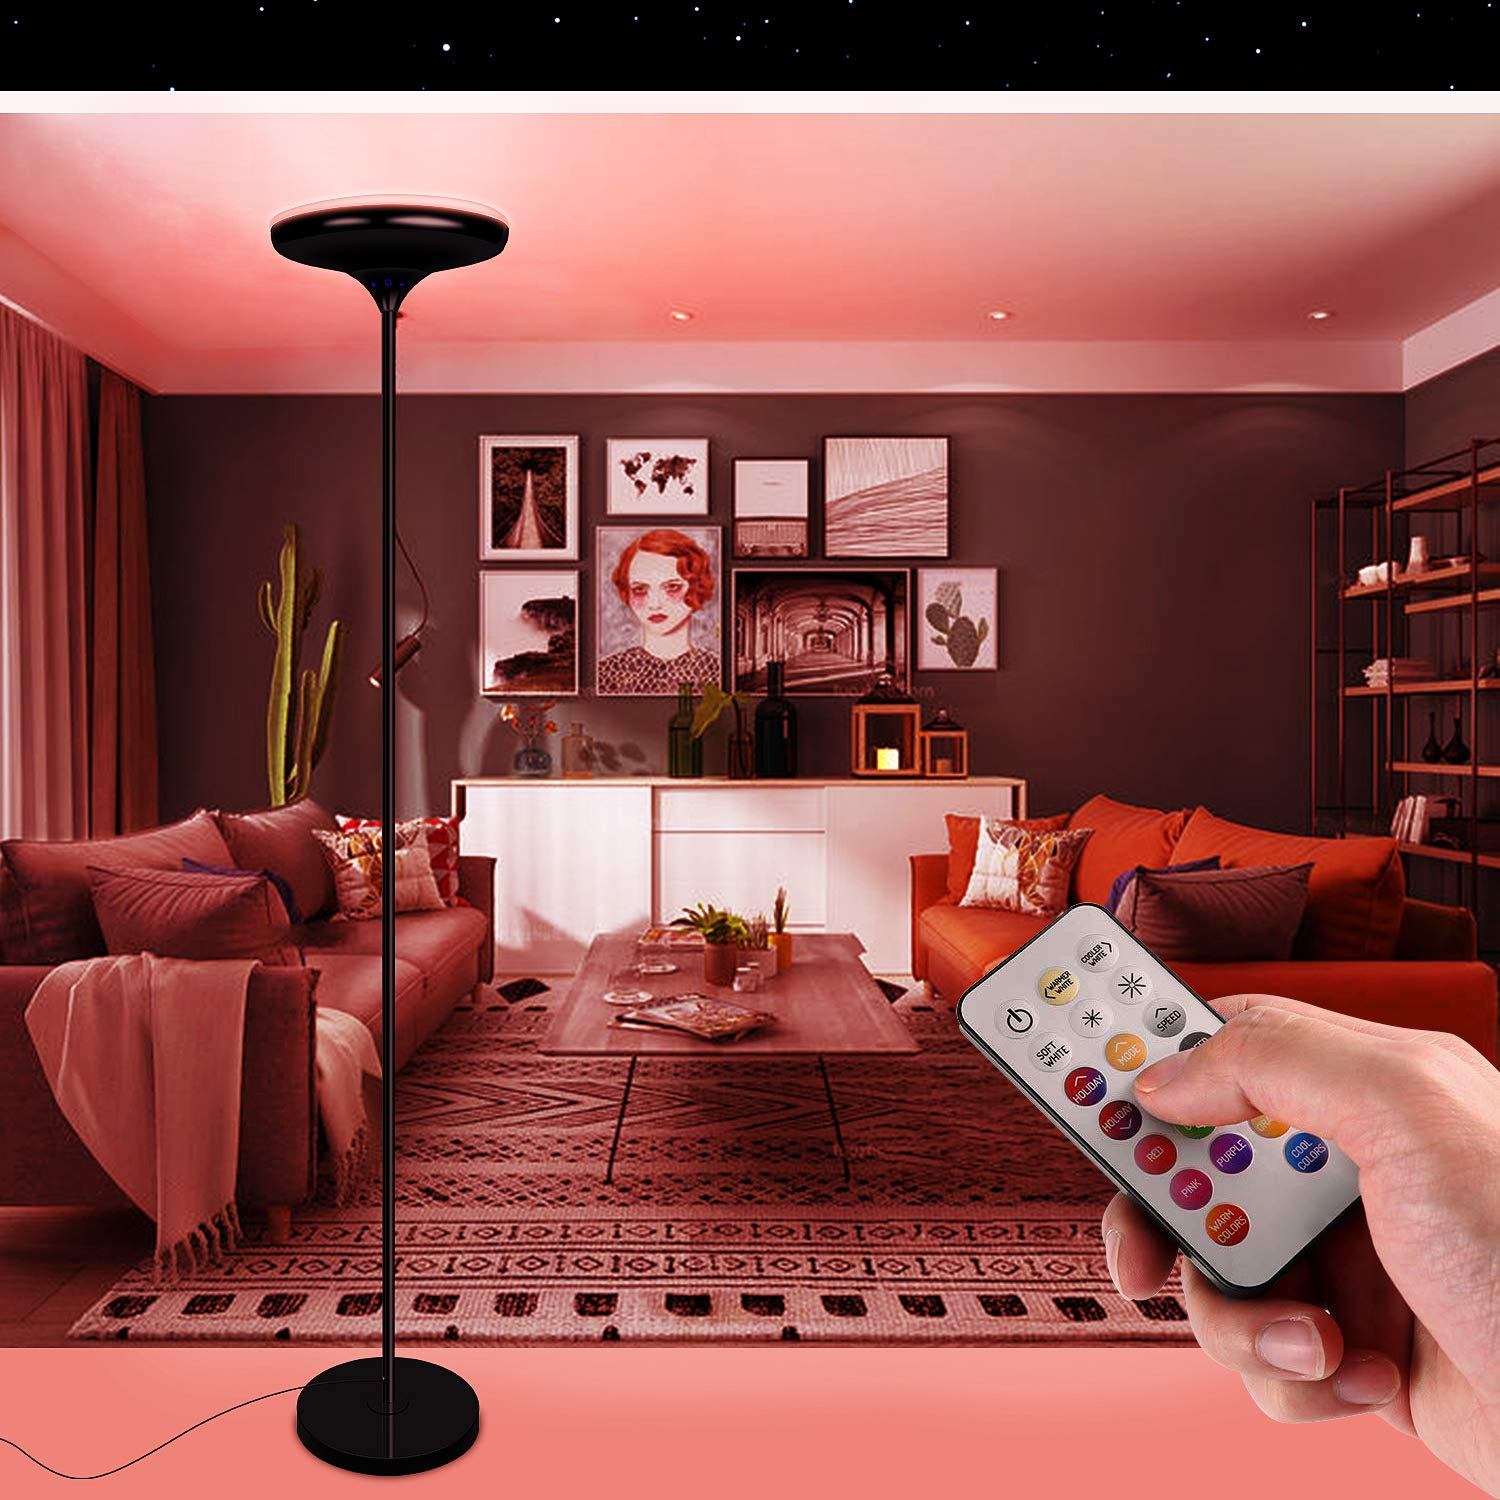 Details About 24w Dimmable Color Changing Led Floor Lamp With Remote Control For Bedroom